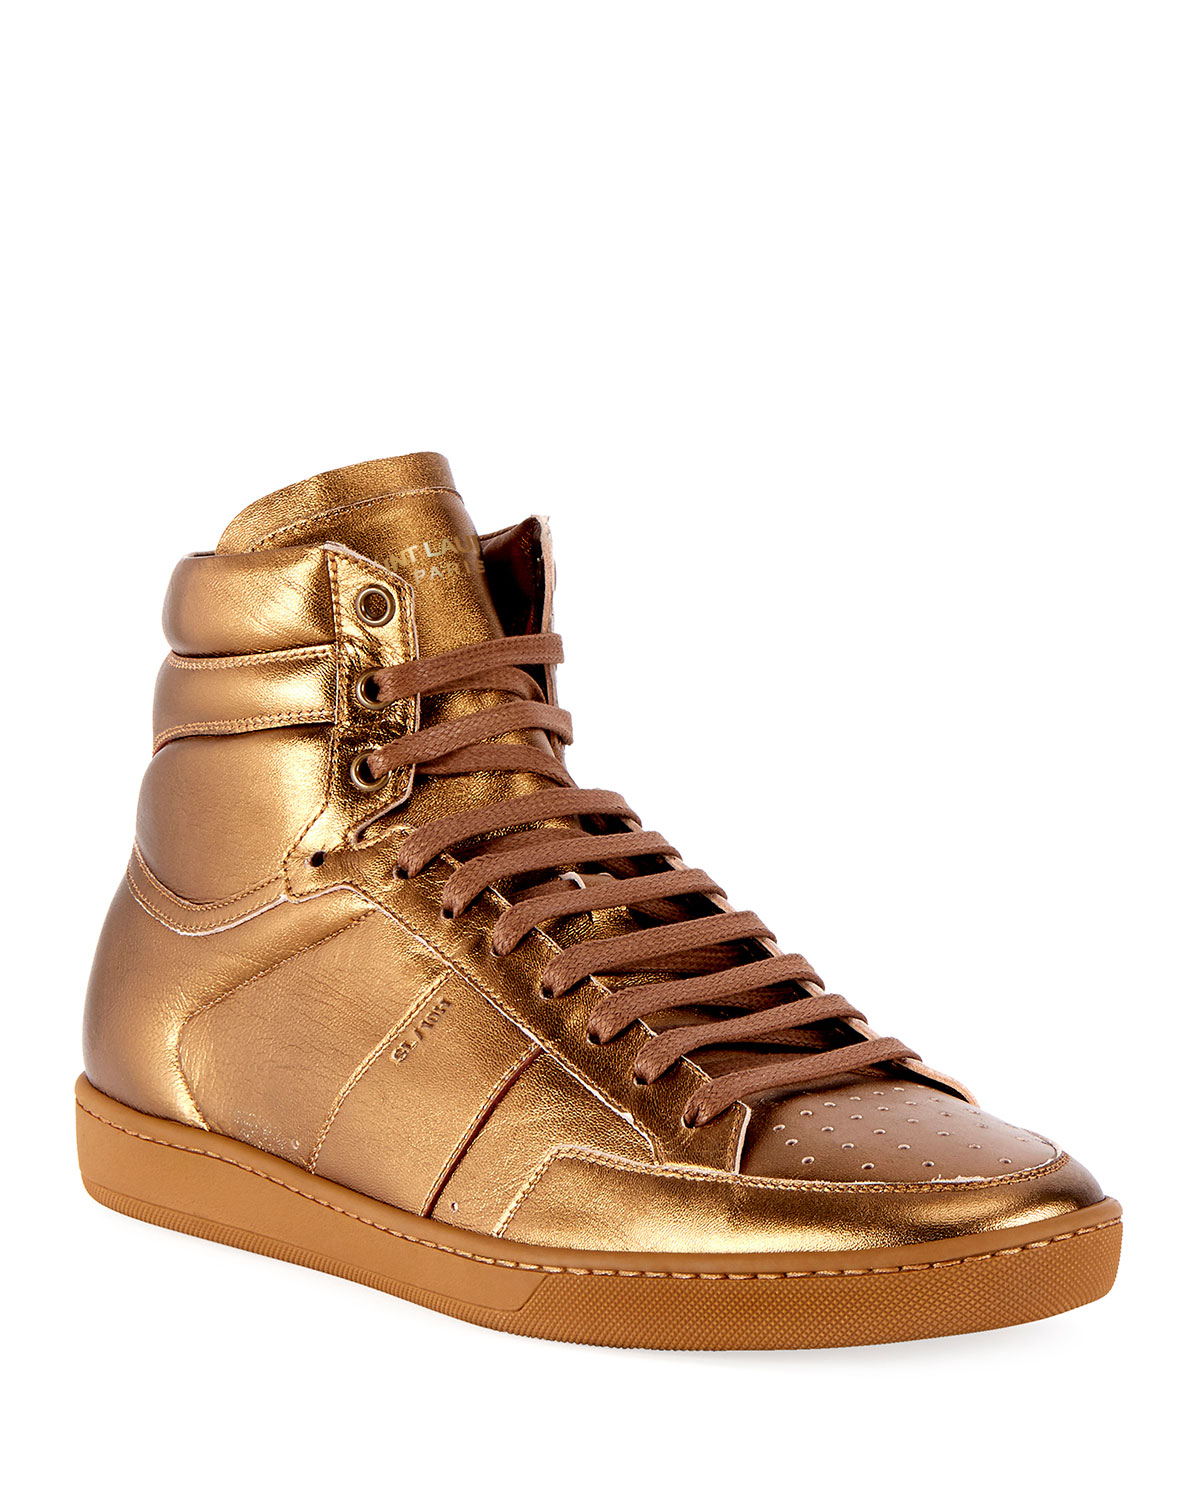 571ed514a40d4 Saint LaurentMen s SL 10H Signature Court Classic Metallic Leather High-Top  Sneakers